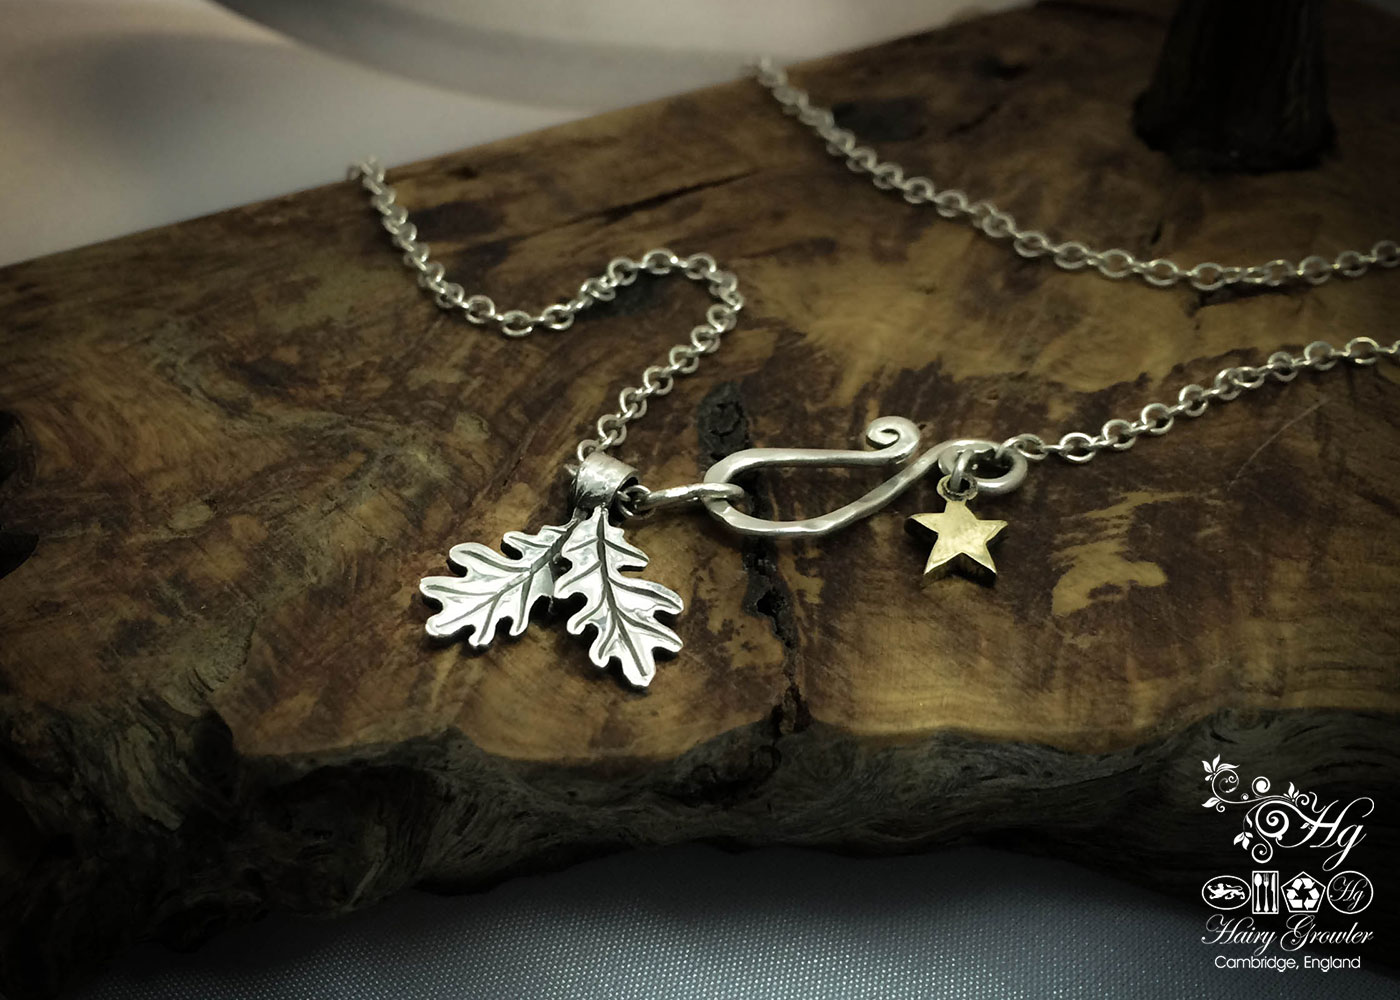 handcrafted silver pair of oak leaves charm for a tree sculpture, necklace or bracelet